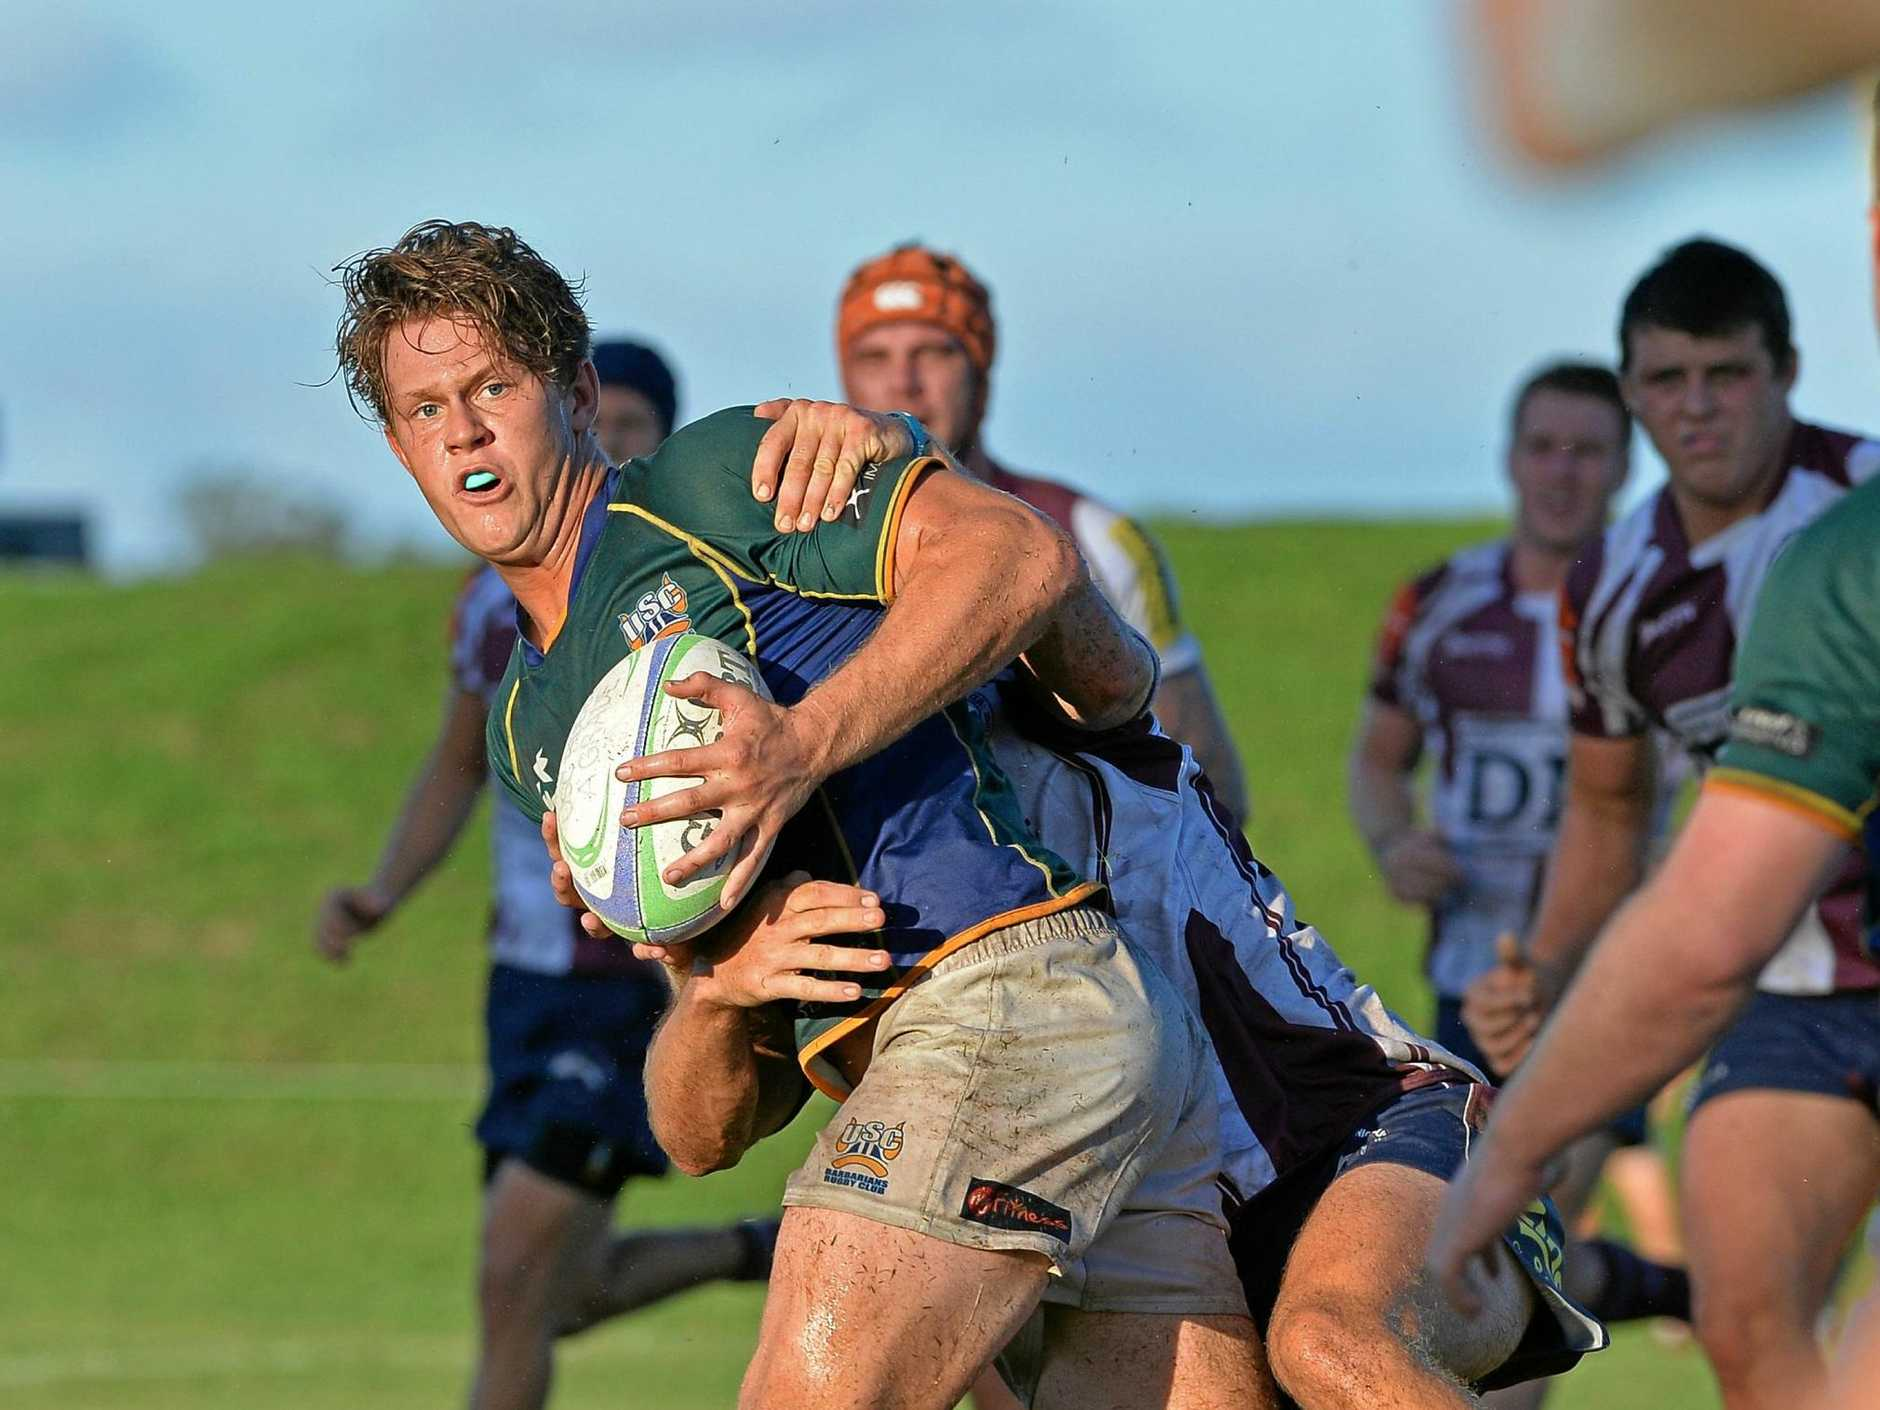 RUGBY: University of the Sunshine Coast v Noosa. USC's Jacob Mabb looks to off load.